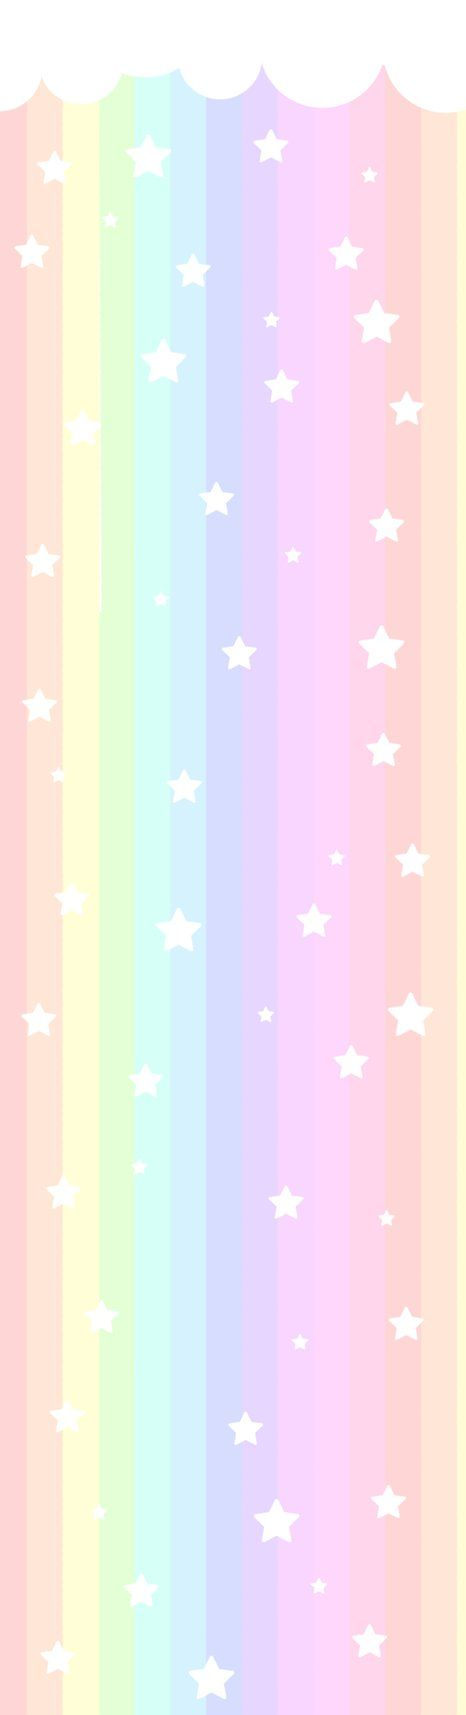 Kawaii Pastel Rainbow Wallpapers Posted By Ethan Cunningham